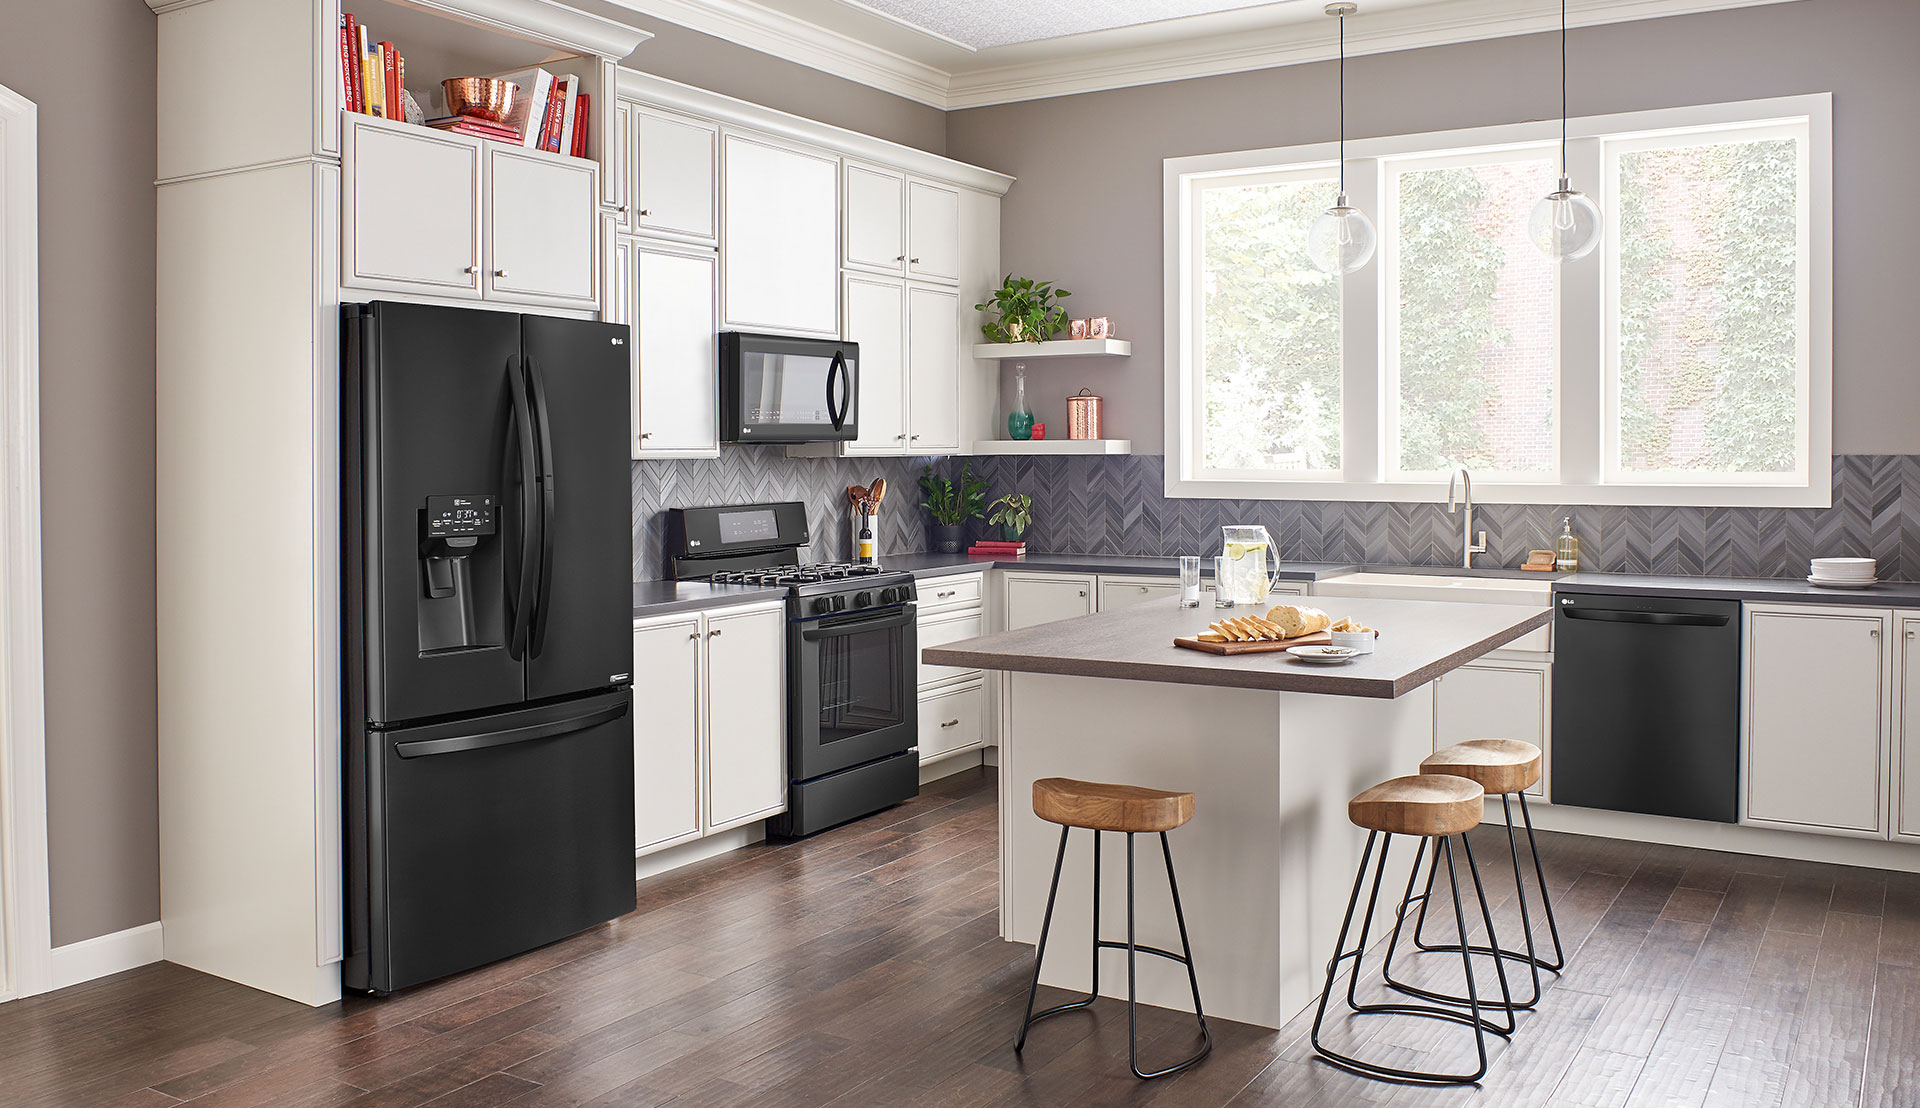 Black Appliances In Kitchen - Trendyexaminer